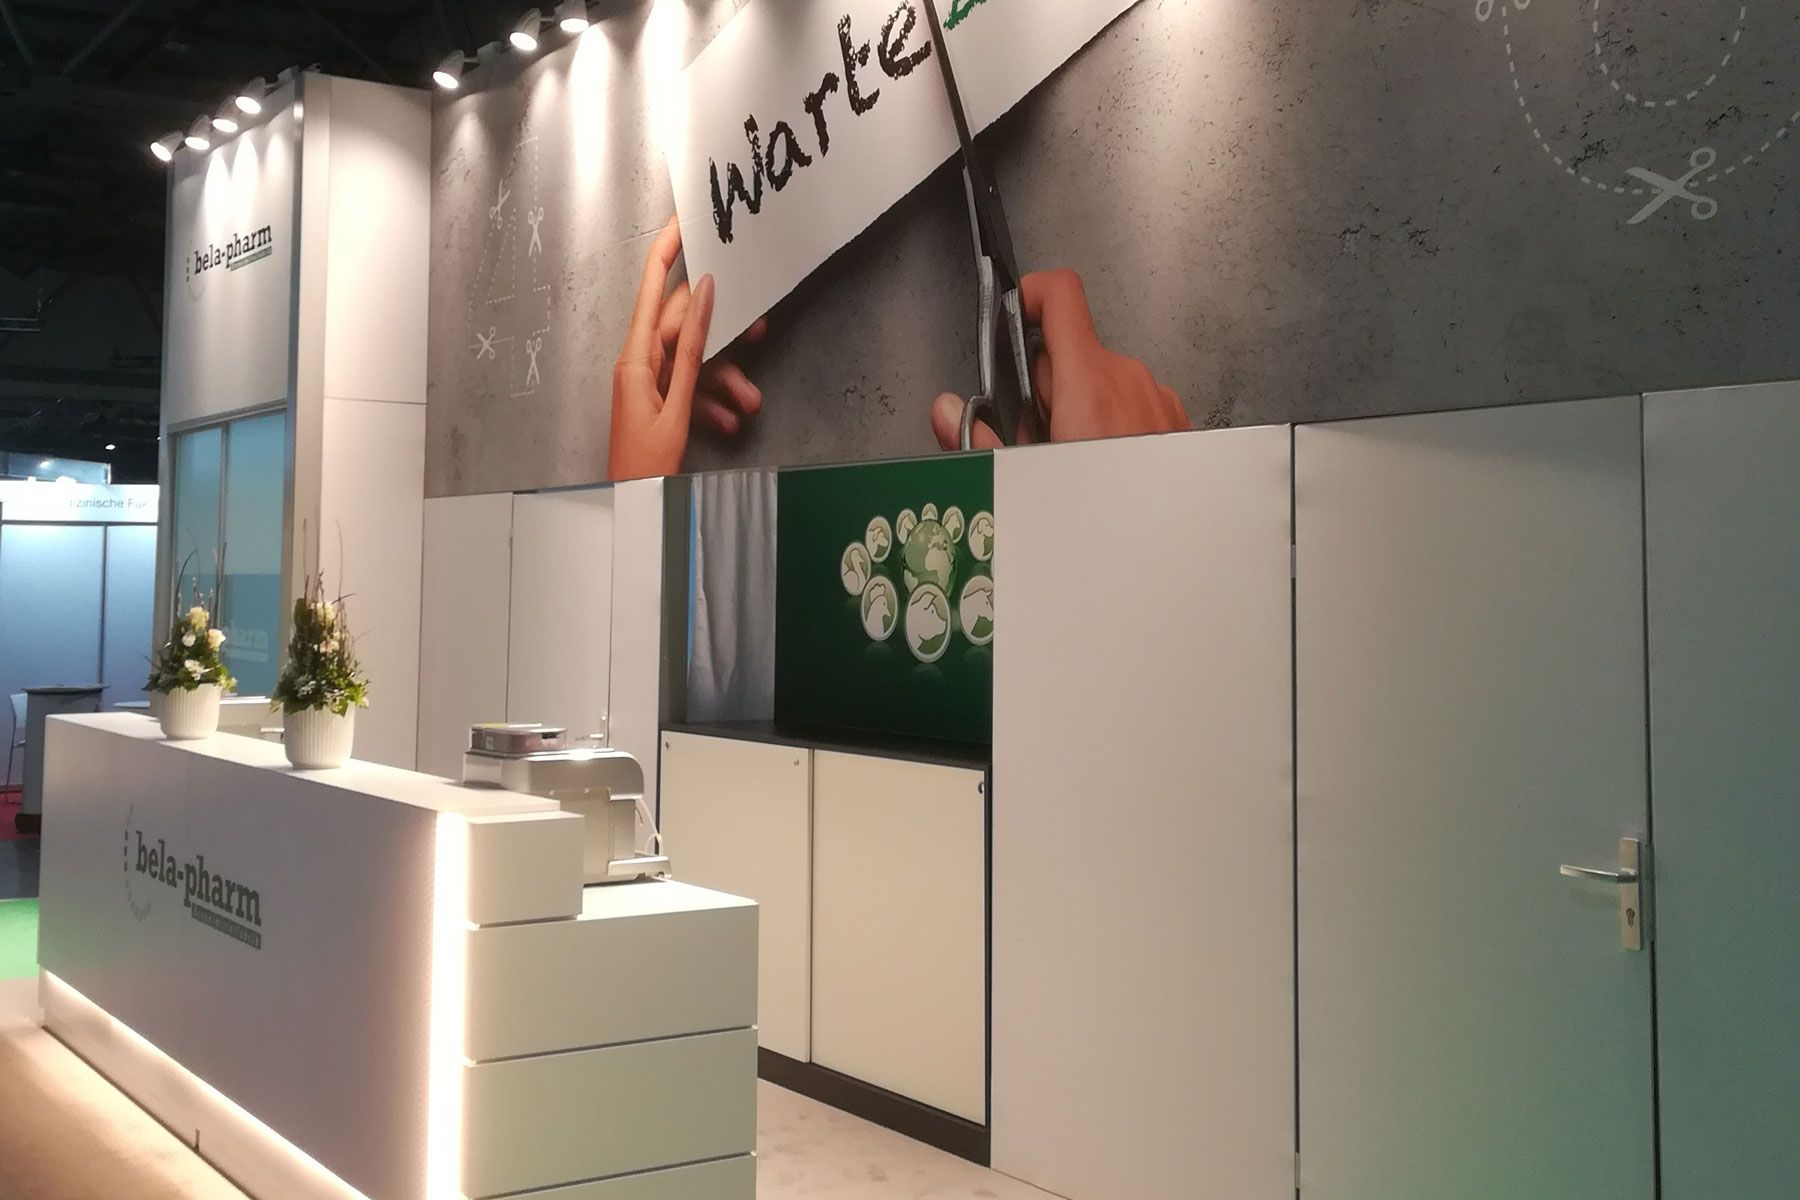 Exhibition stand bela-pharm counter area